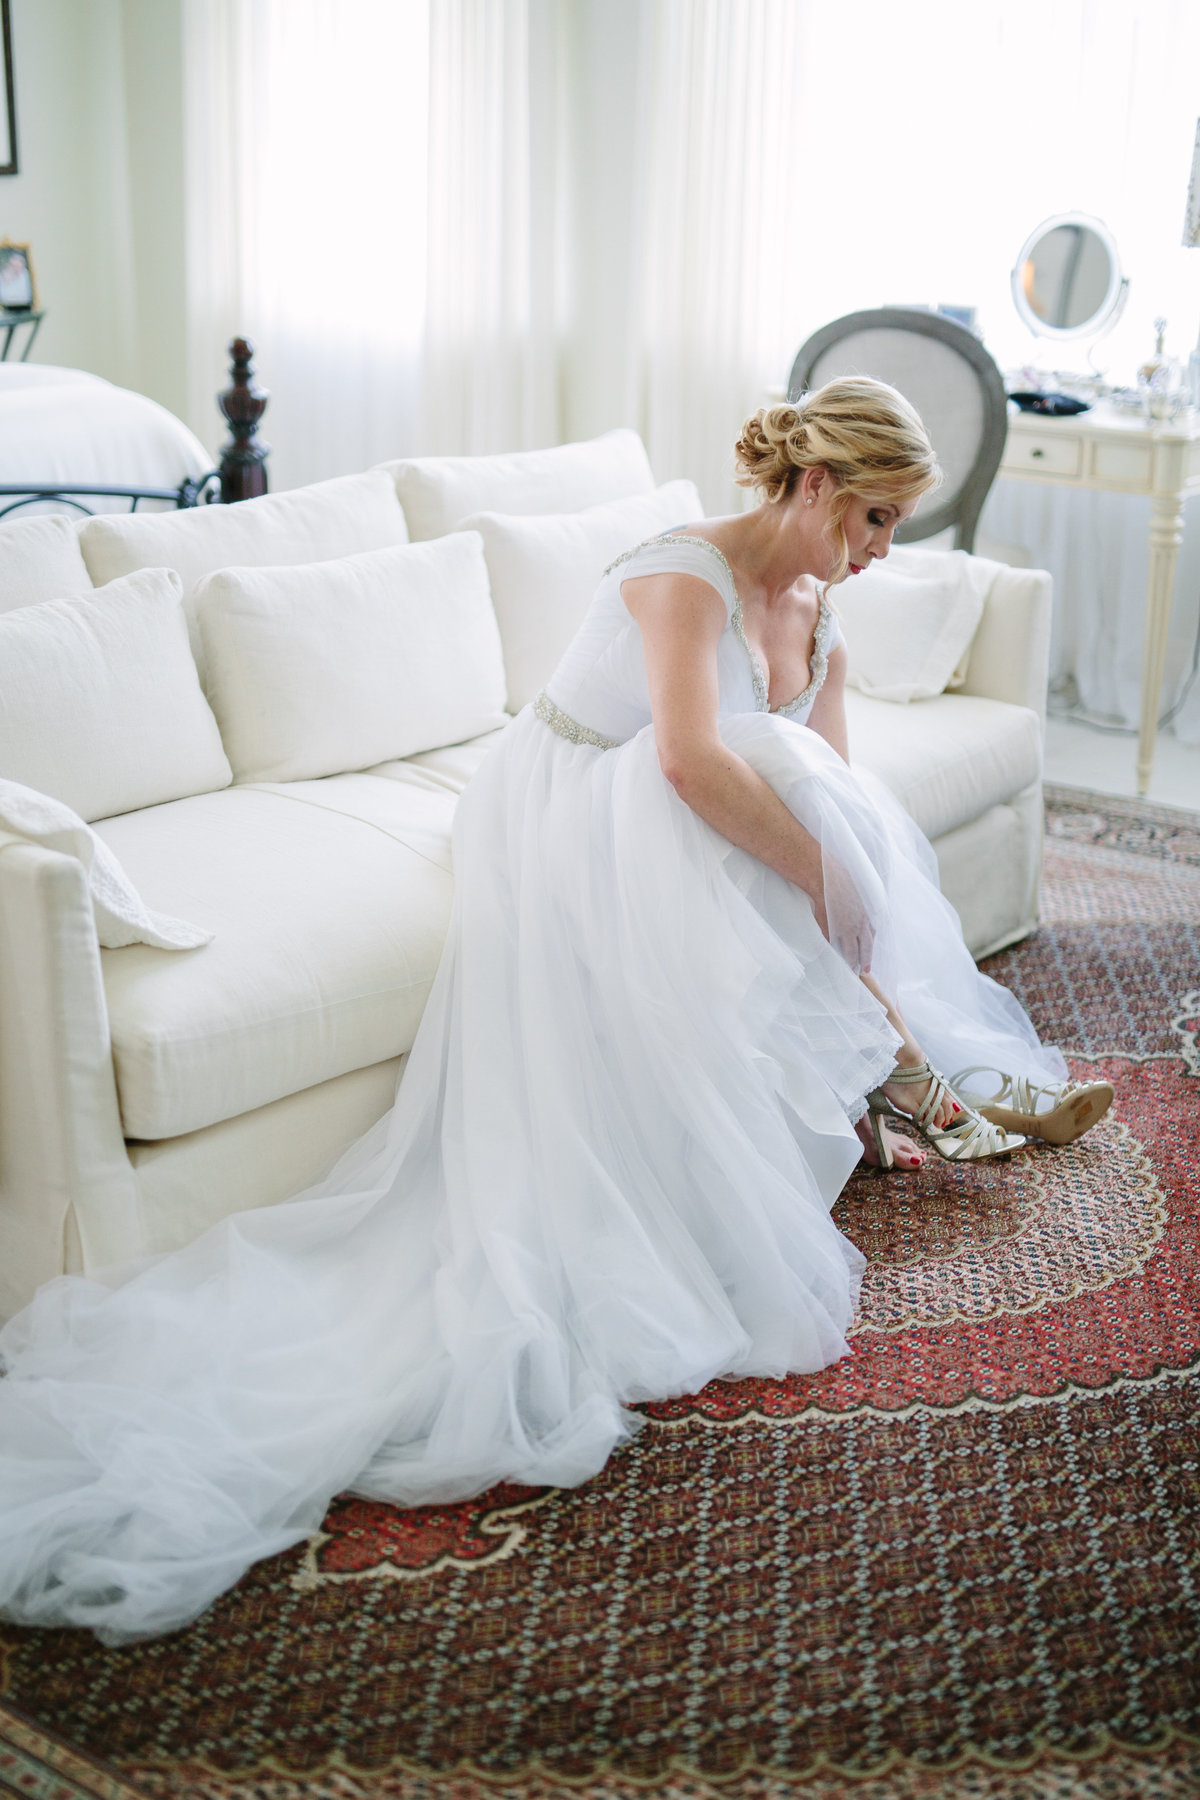 Bride putting her wedding shoes on during getting ready at home in San Antonio